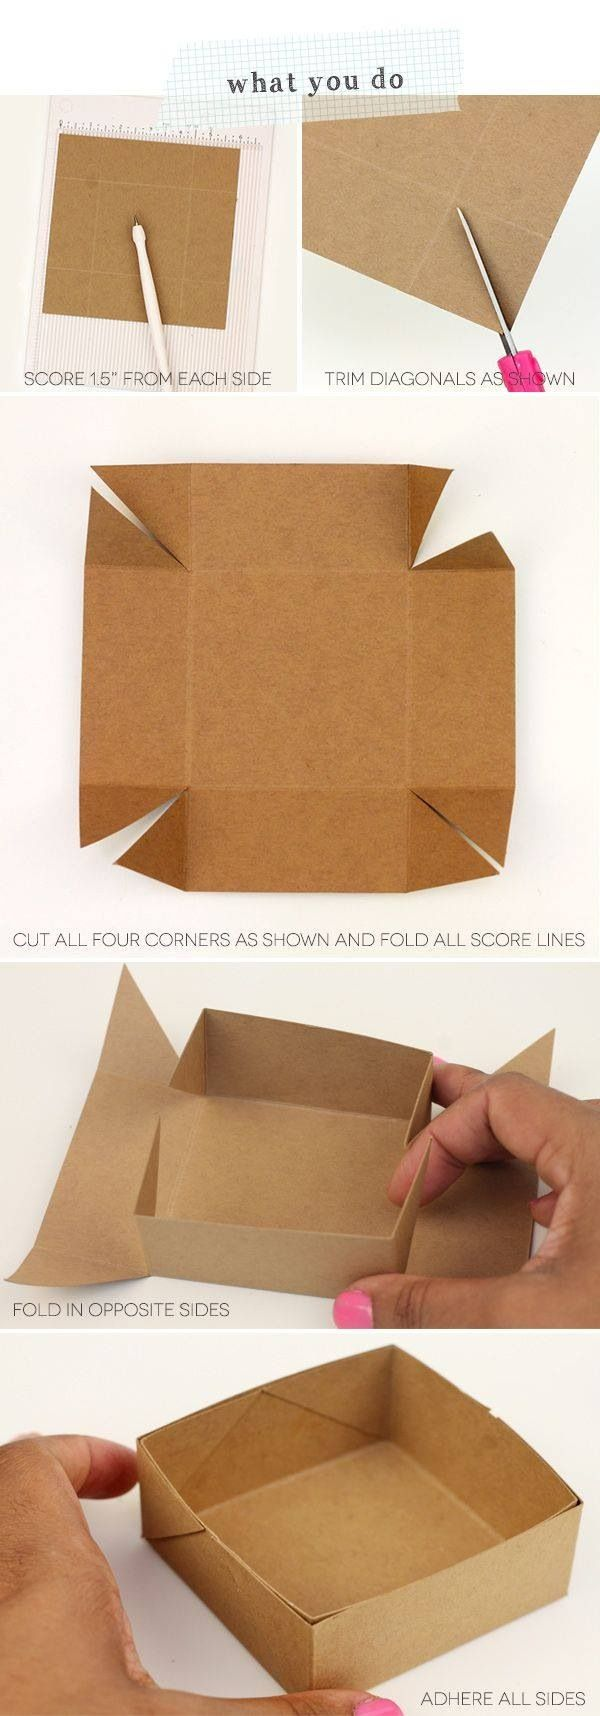 How to make a box of paper Casket for decorations made of paper